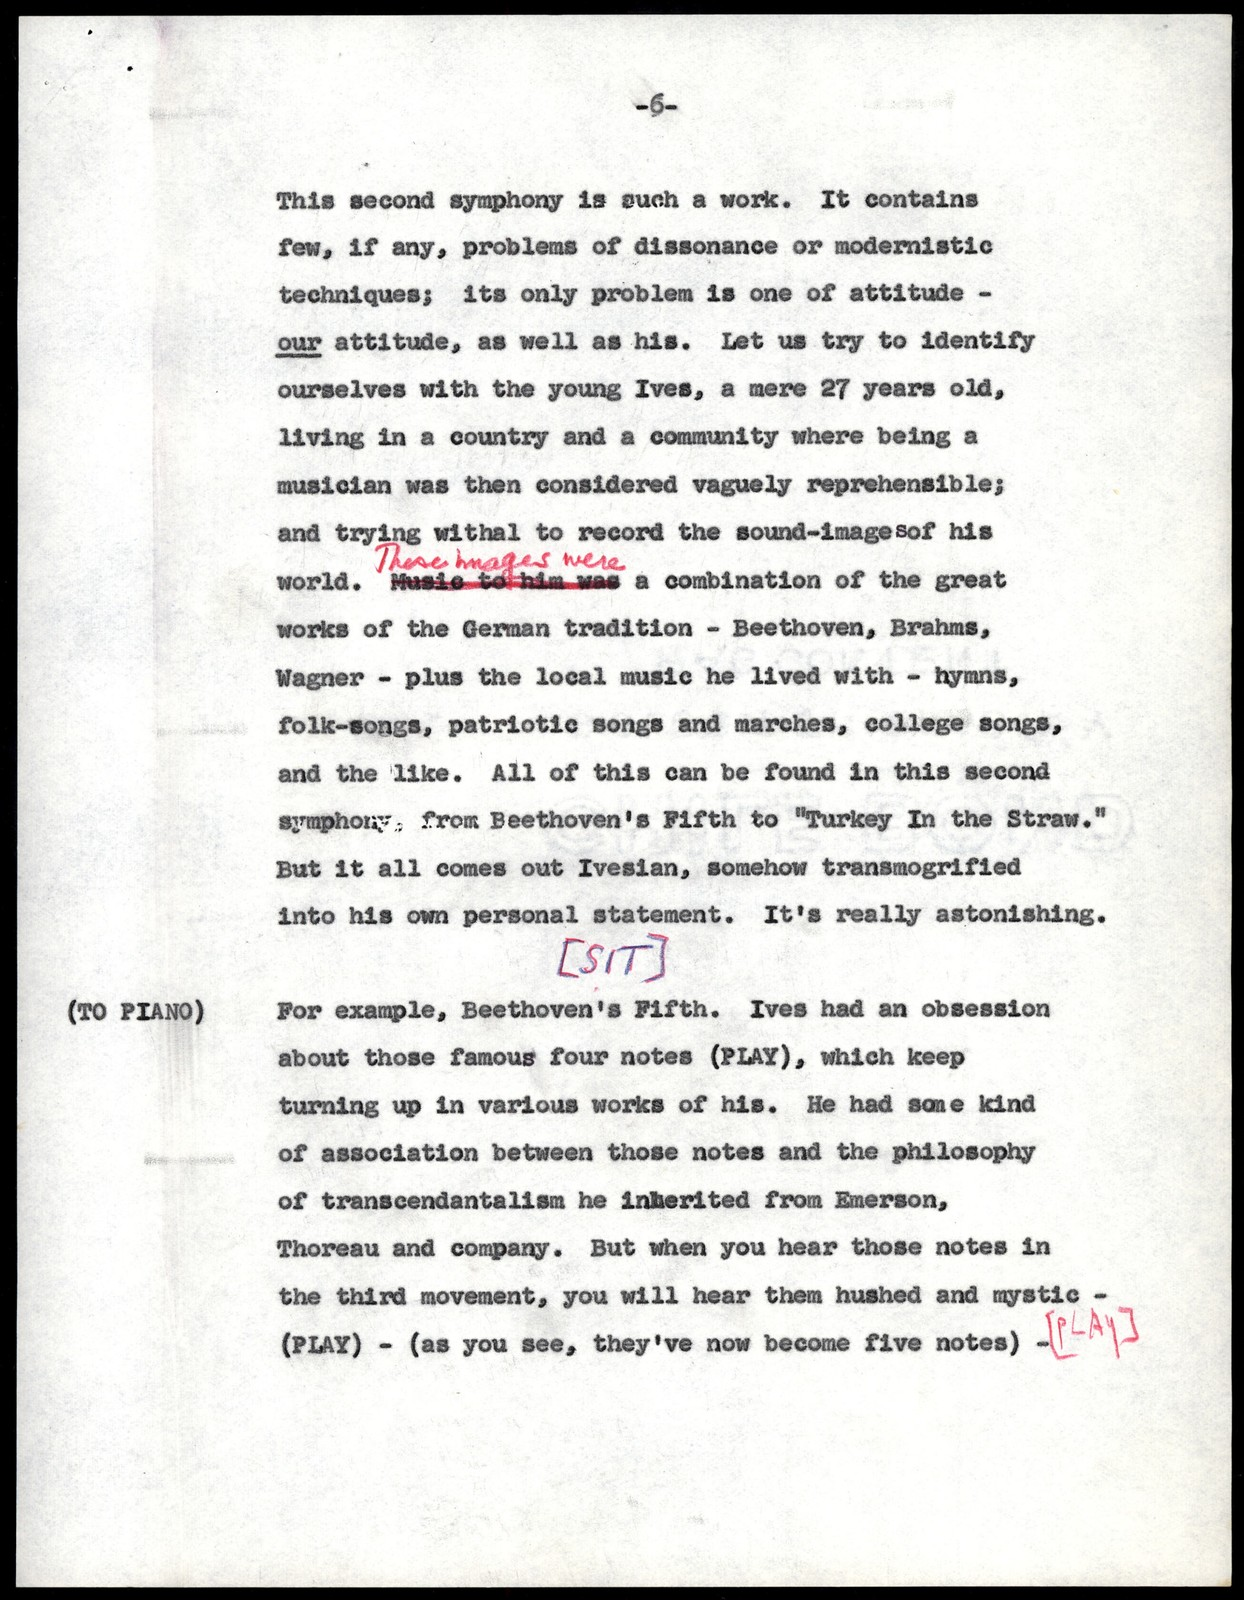 Thursday Evening Previews Scripts: Opening of the New York Philharmonic Season of 1958-1959 [typescript with emendations in red, blue & black pencil; marked Afinal]